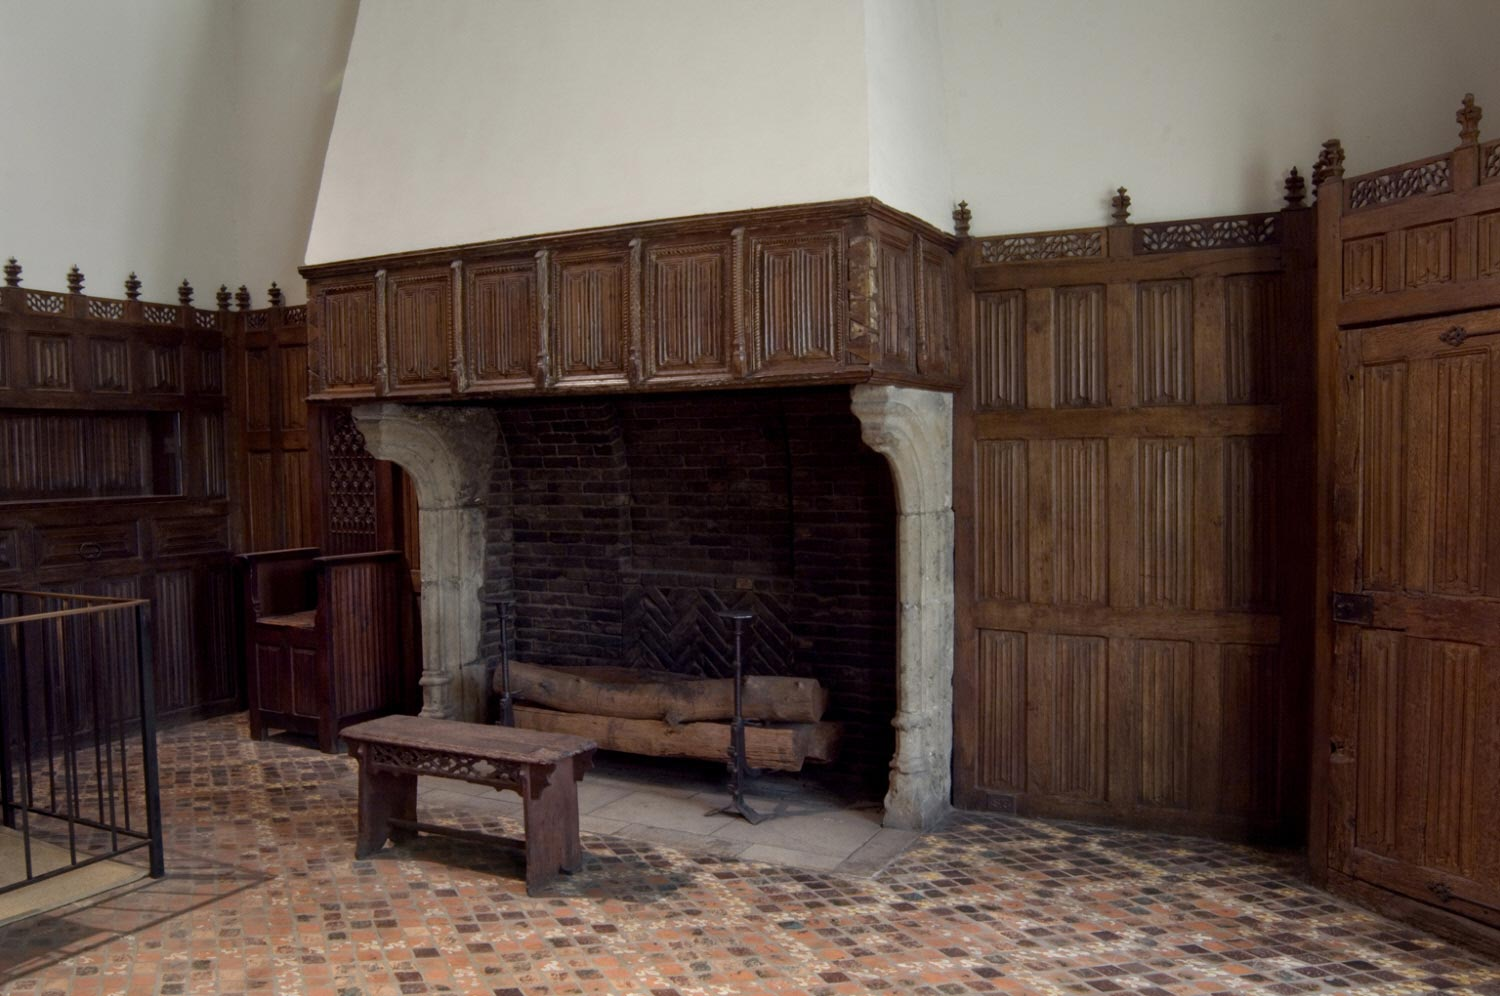 Late Gothic Room